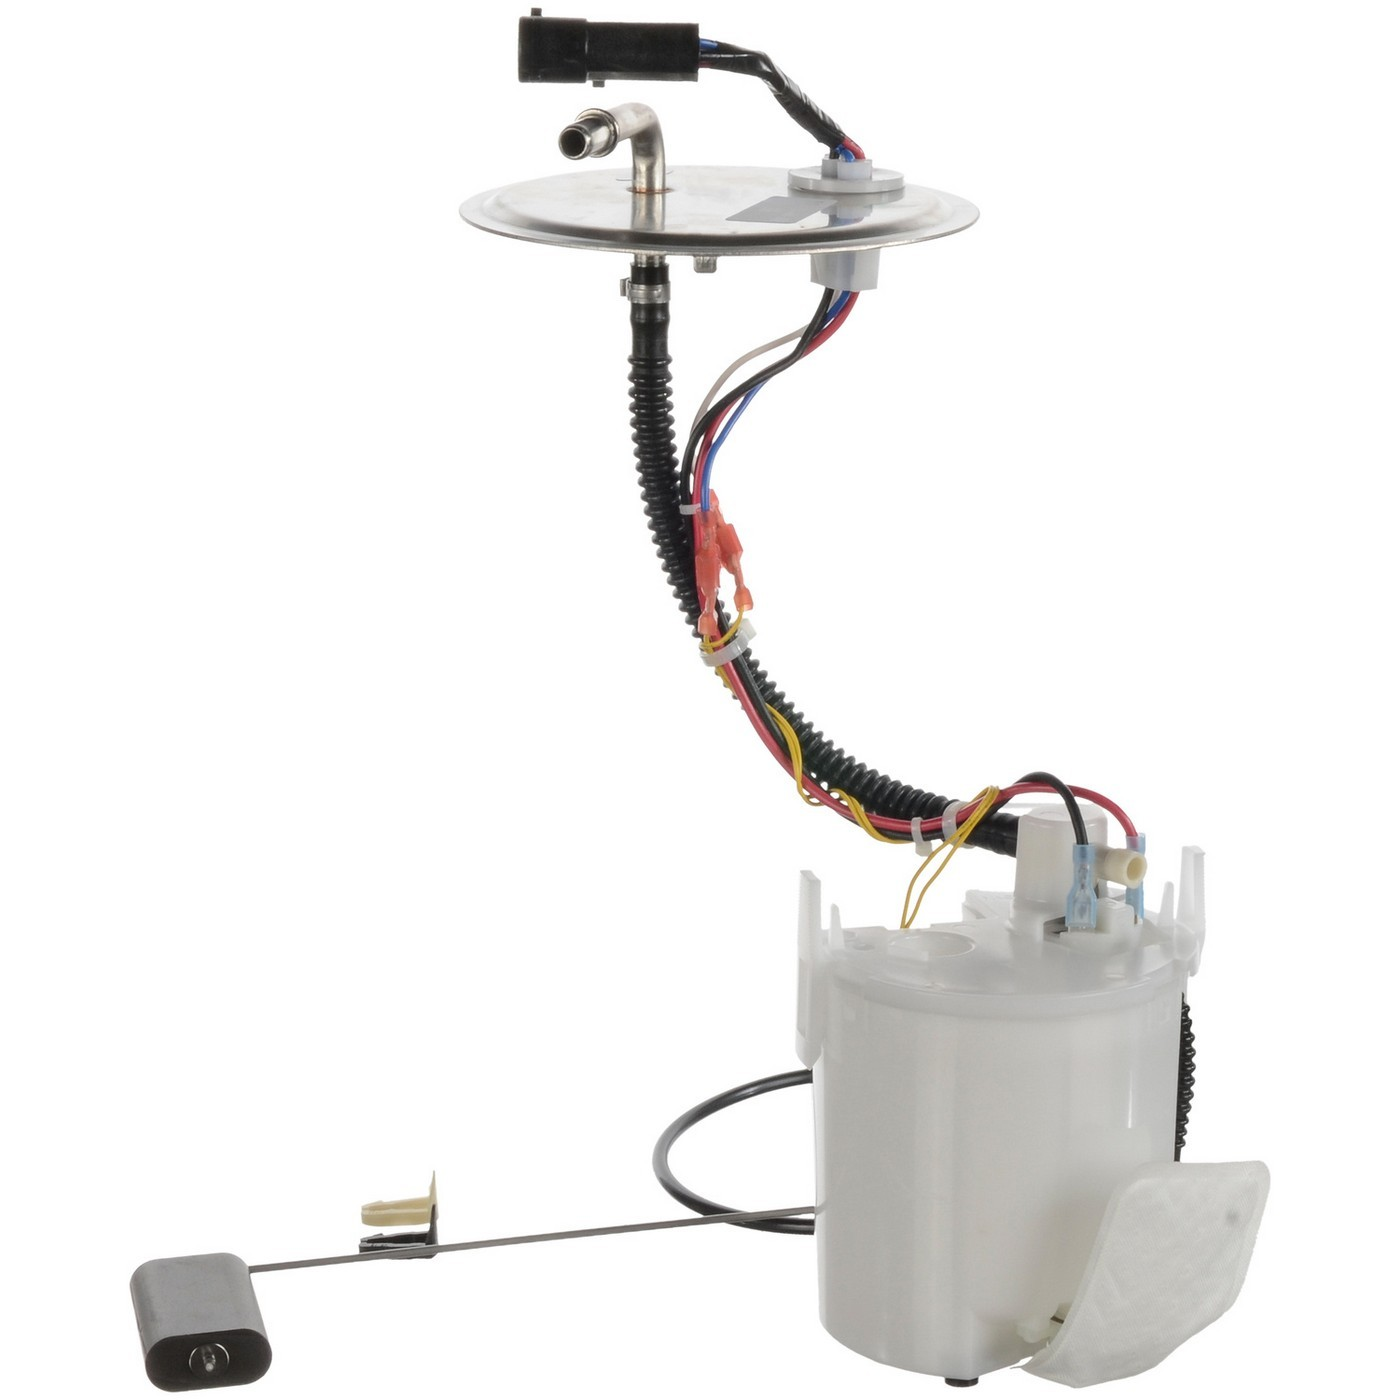 Fuel Pump Assemblies Bosch Auto Parts Electrical Supplied The Industrys First Injection System With A High Pressure Electric In 1967 Since Then Has Stood At Forefront Of